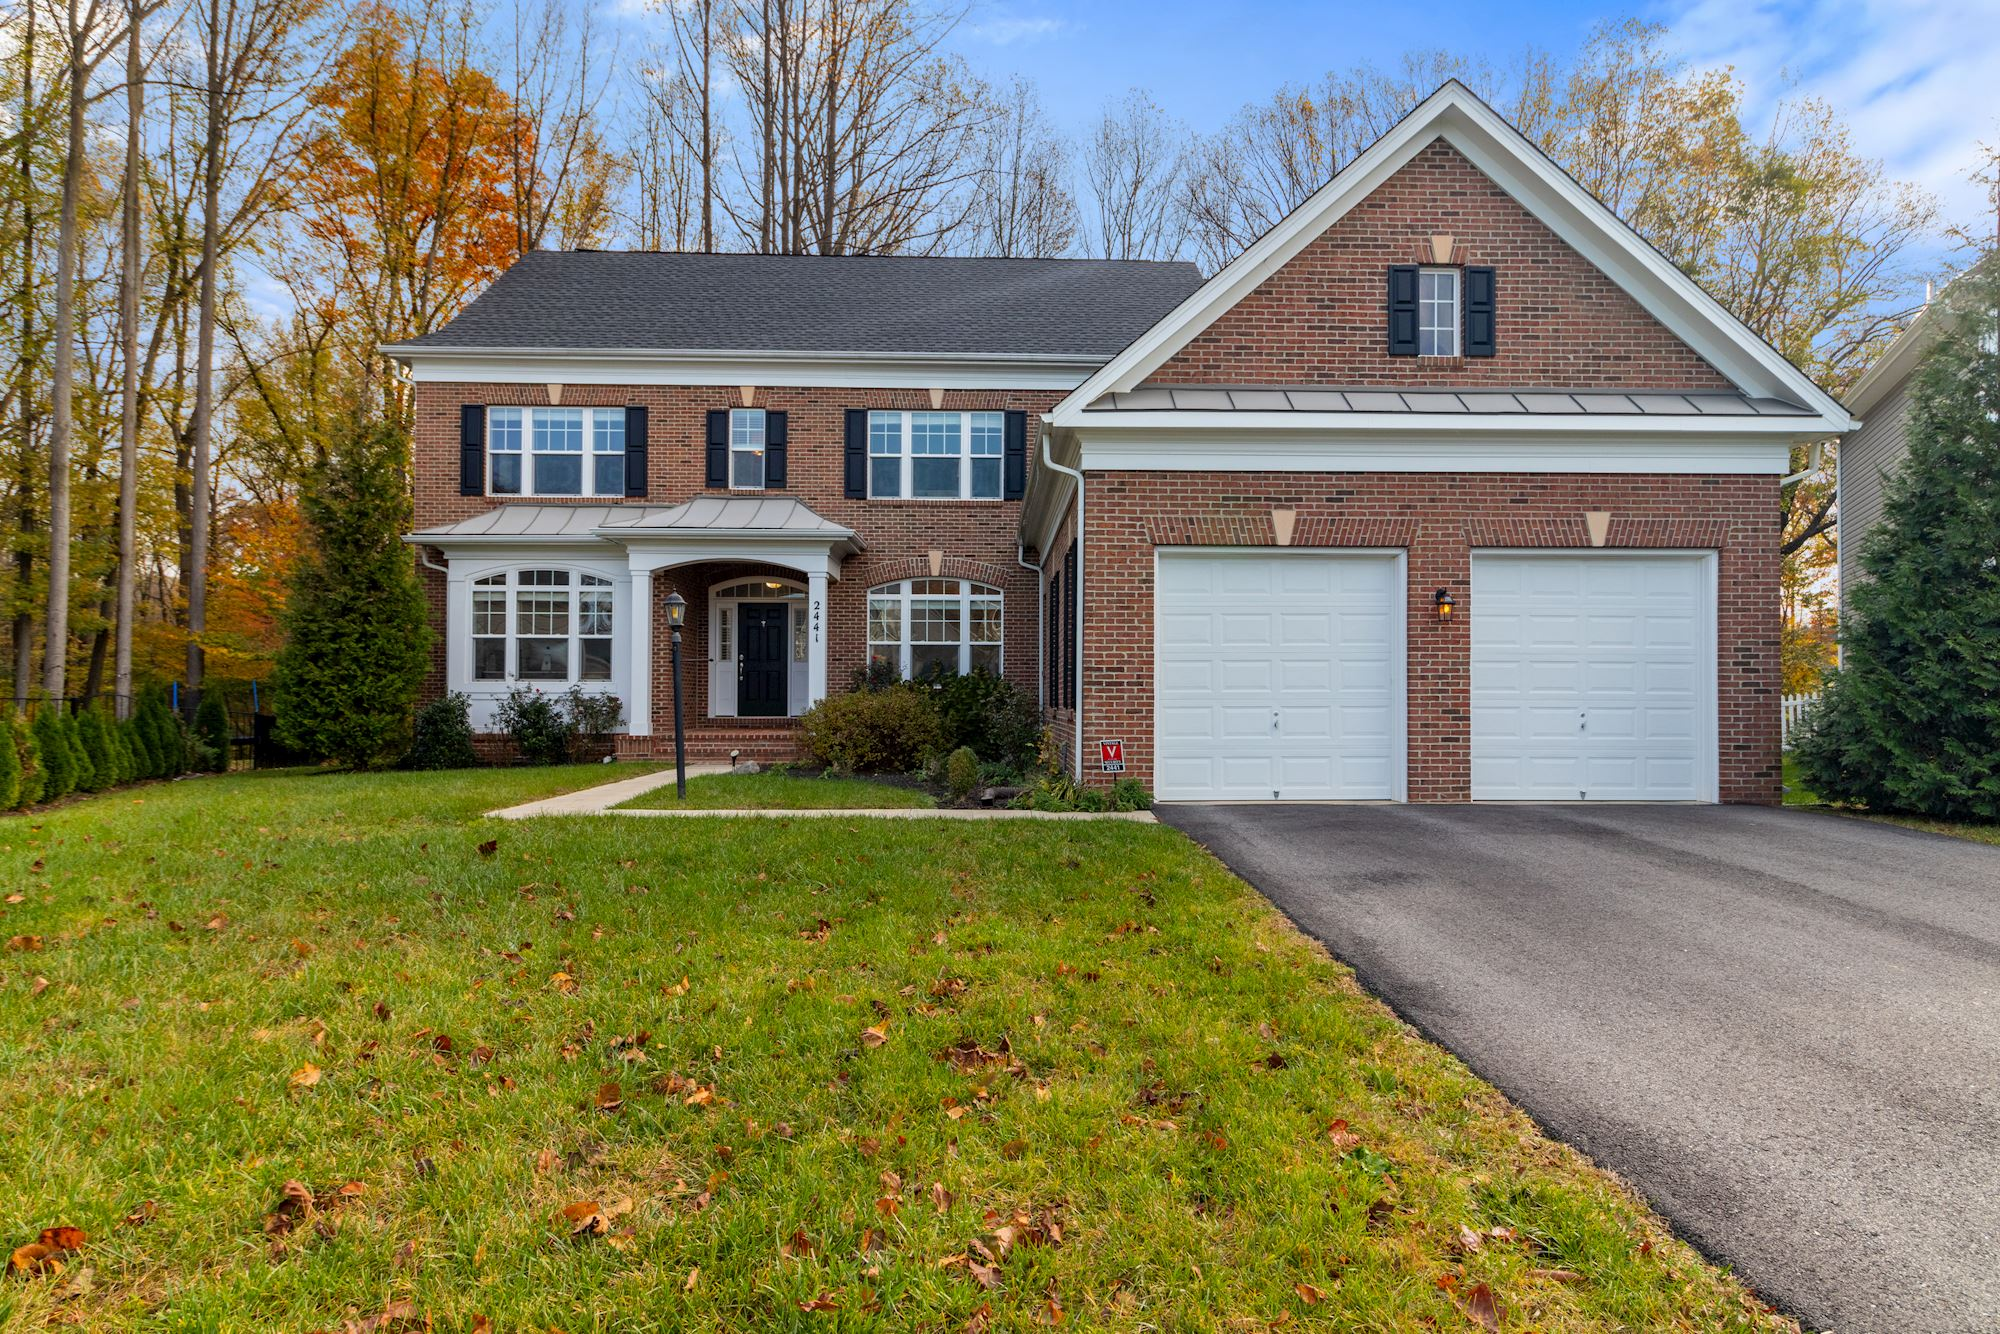 Fantastic 4 BD Home in Popular Wilsons Grove Community in Gambrills, MD